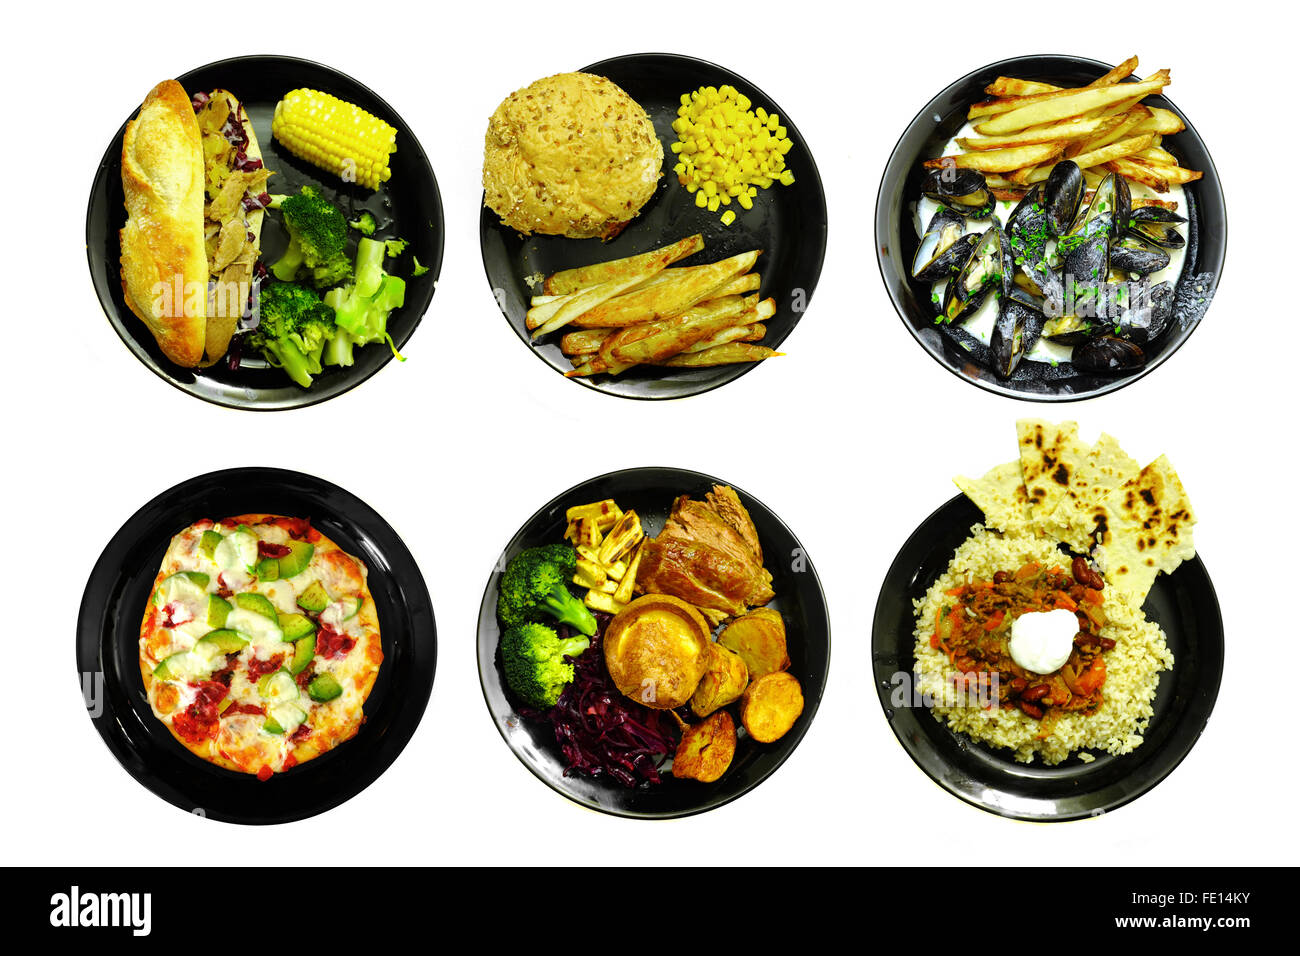 Different Meals On Black Plates Photographed Against A White Stock Photo Alamy